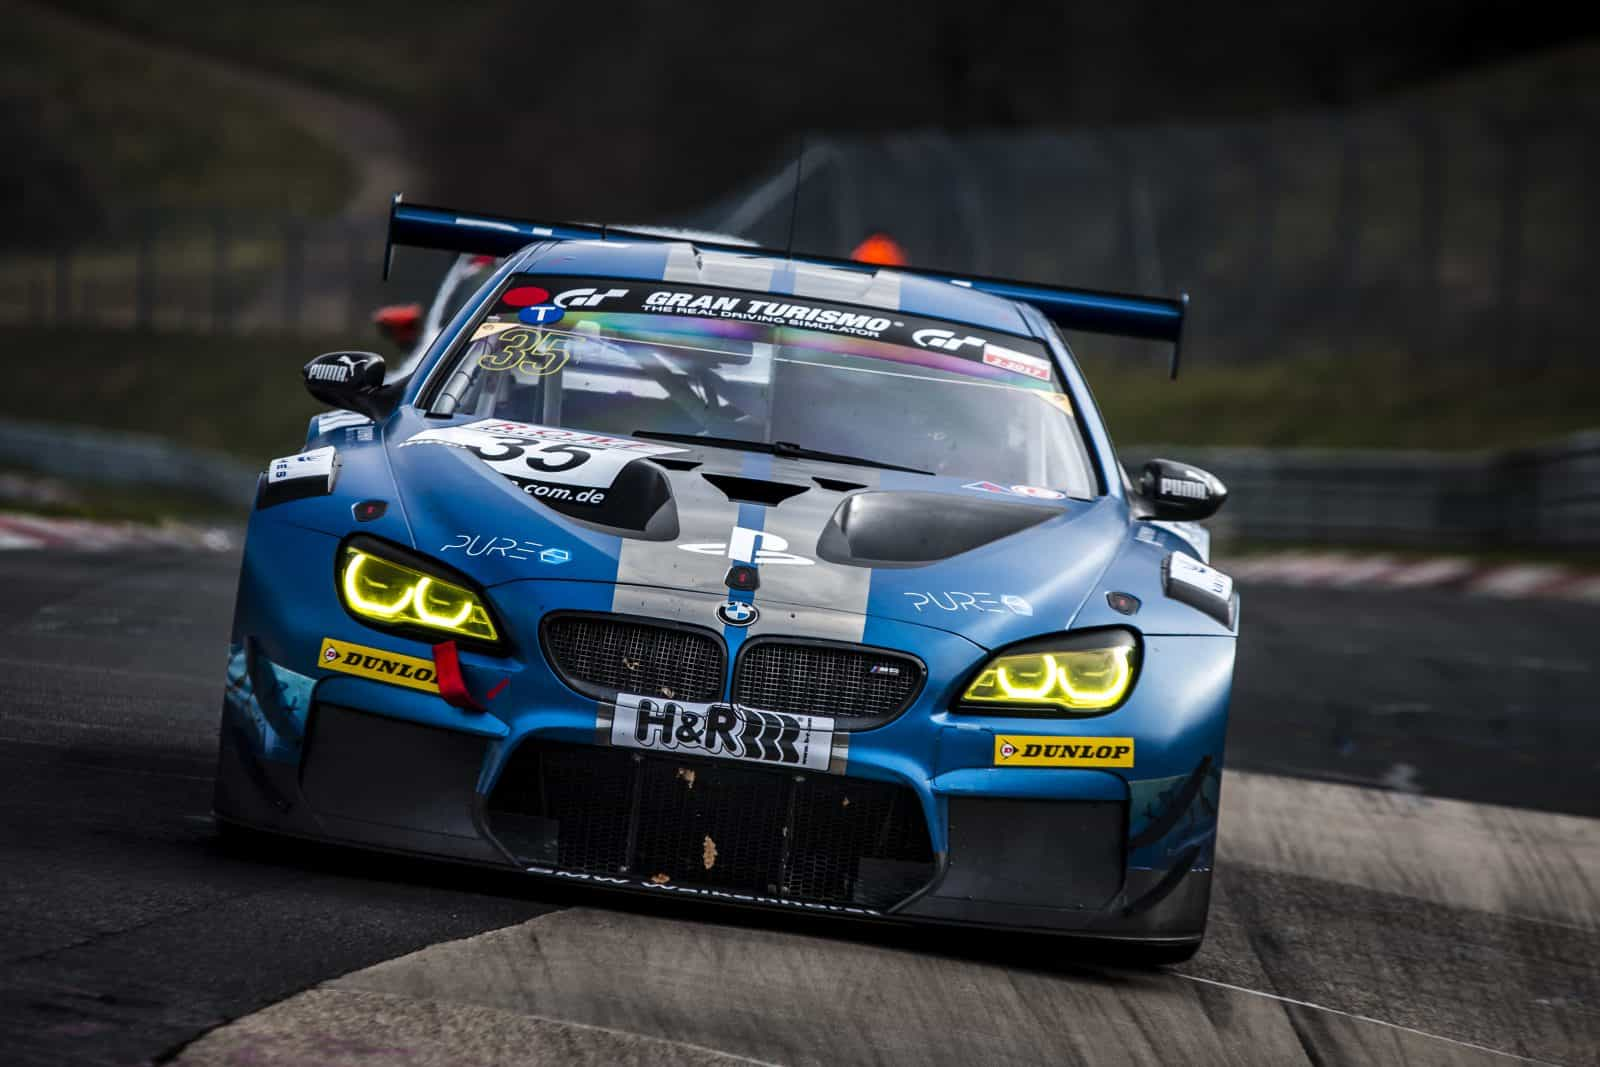 Rennfahrer David Schiwietz - PlayStation BMW M6 GT3 2018 24h Rennen PURE Energy Drink